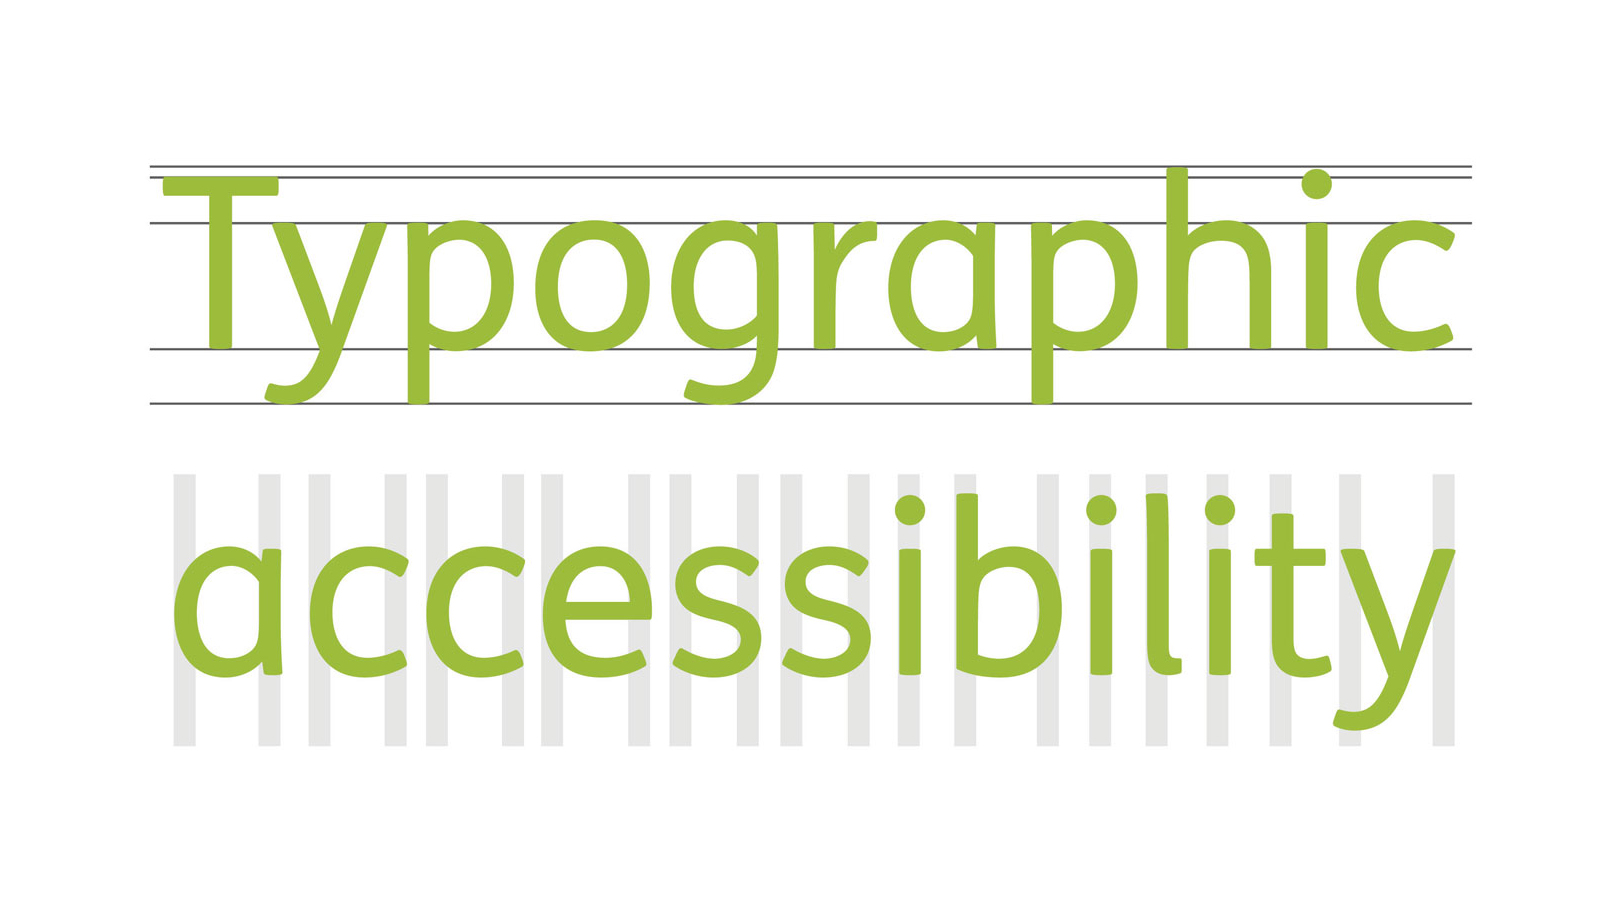 How accessible is your typeface?